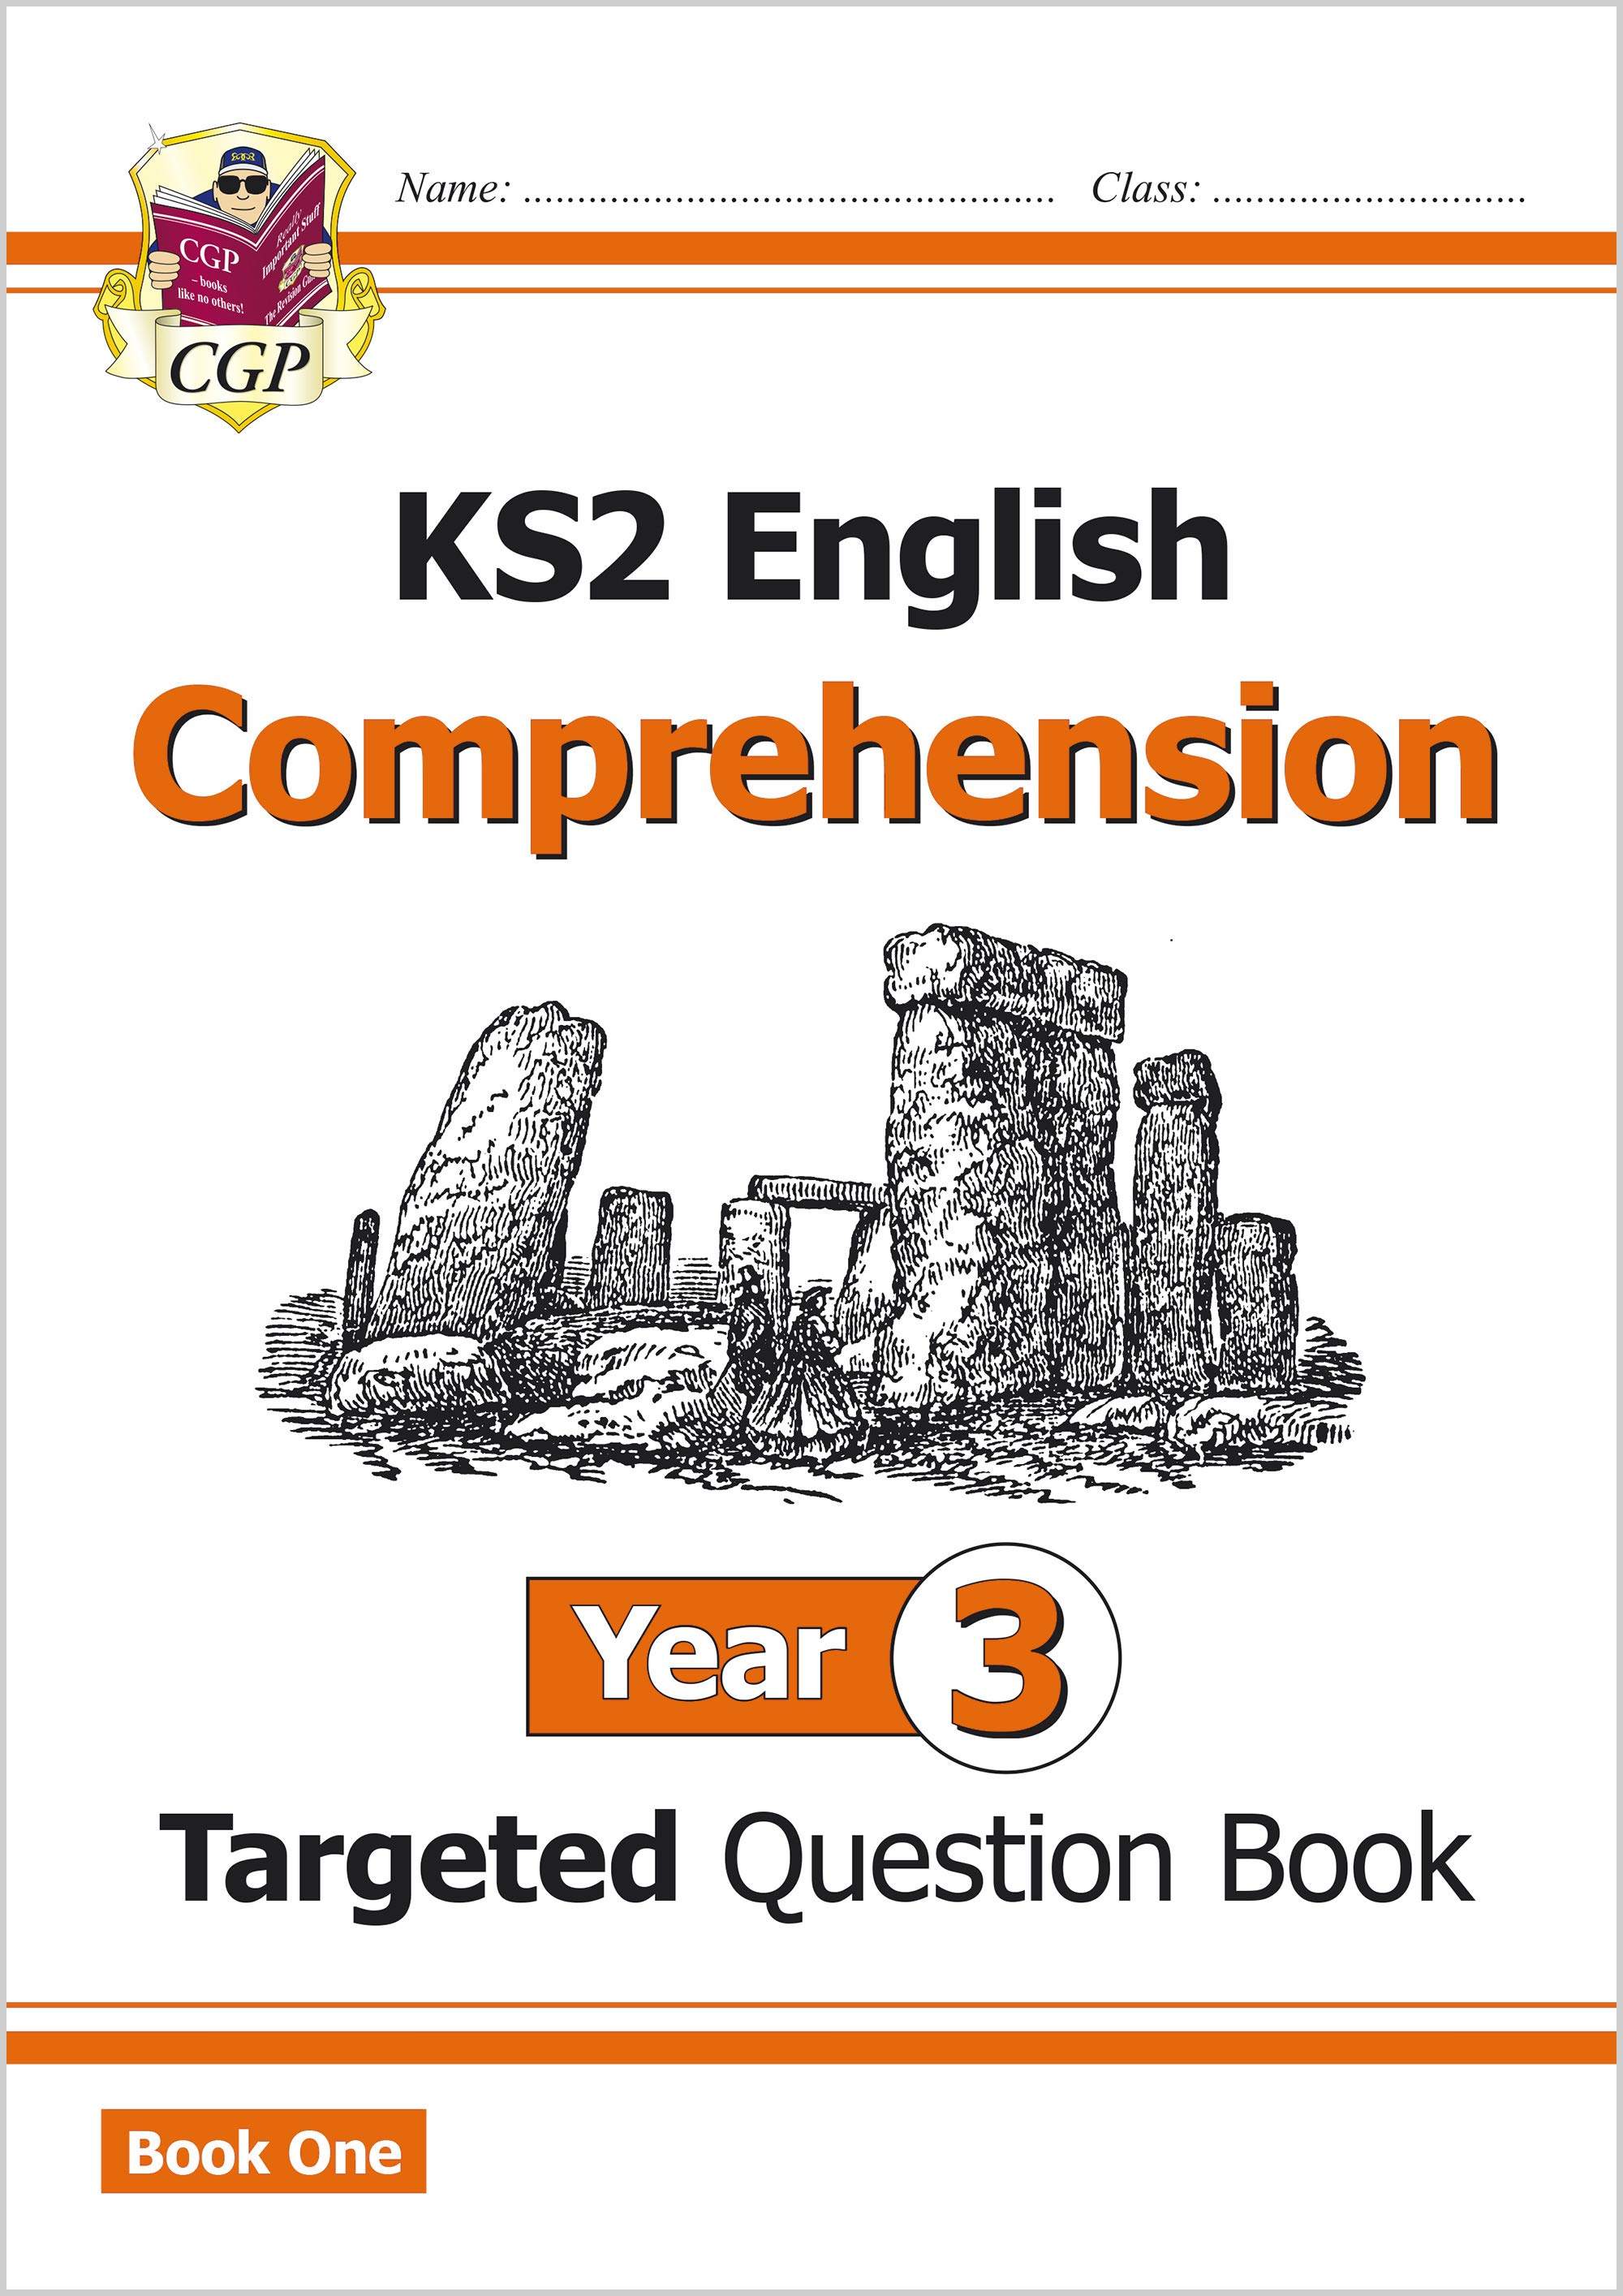 E3CW21 - New KS2 English Targeted Question Book: Year 3 Comprehension - Book 1